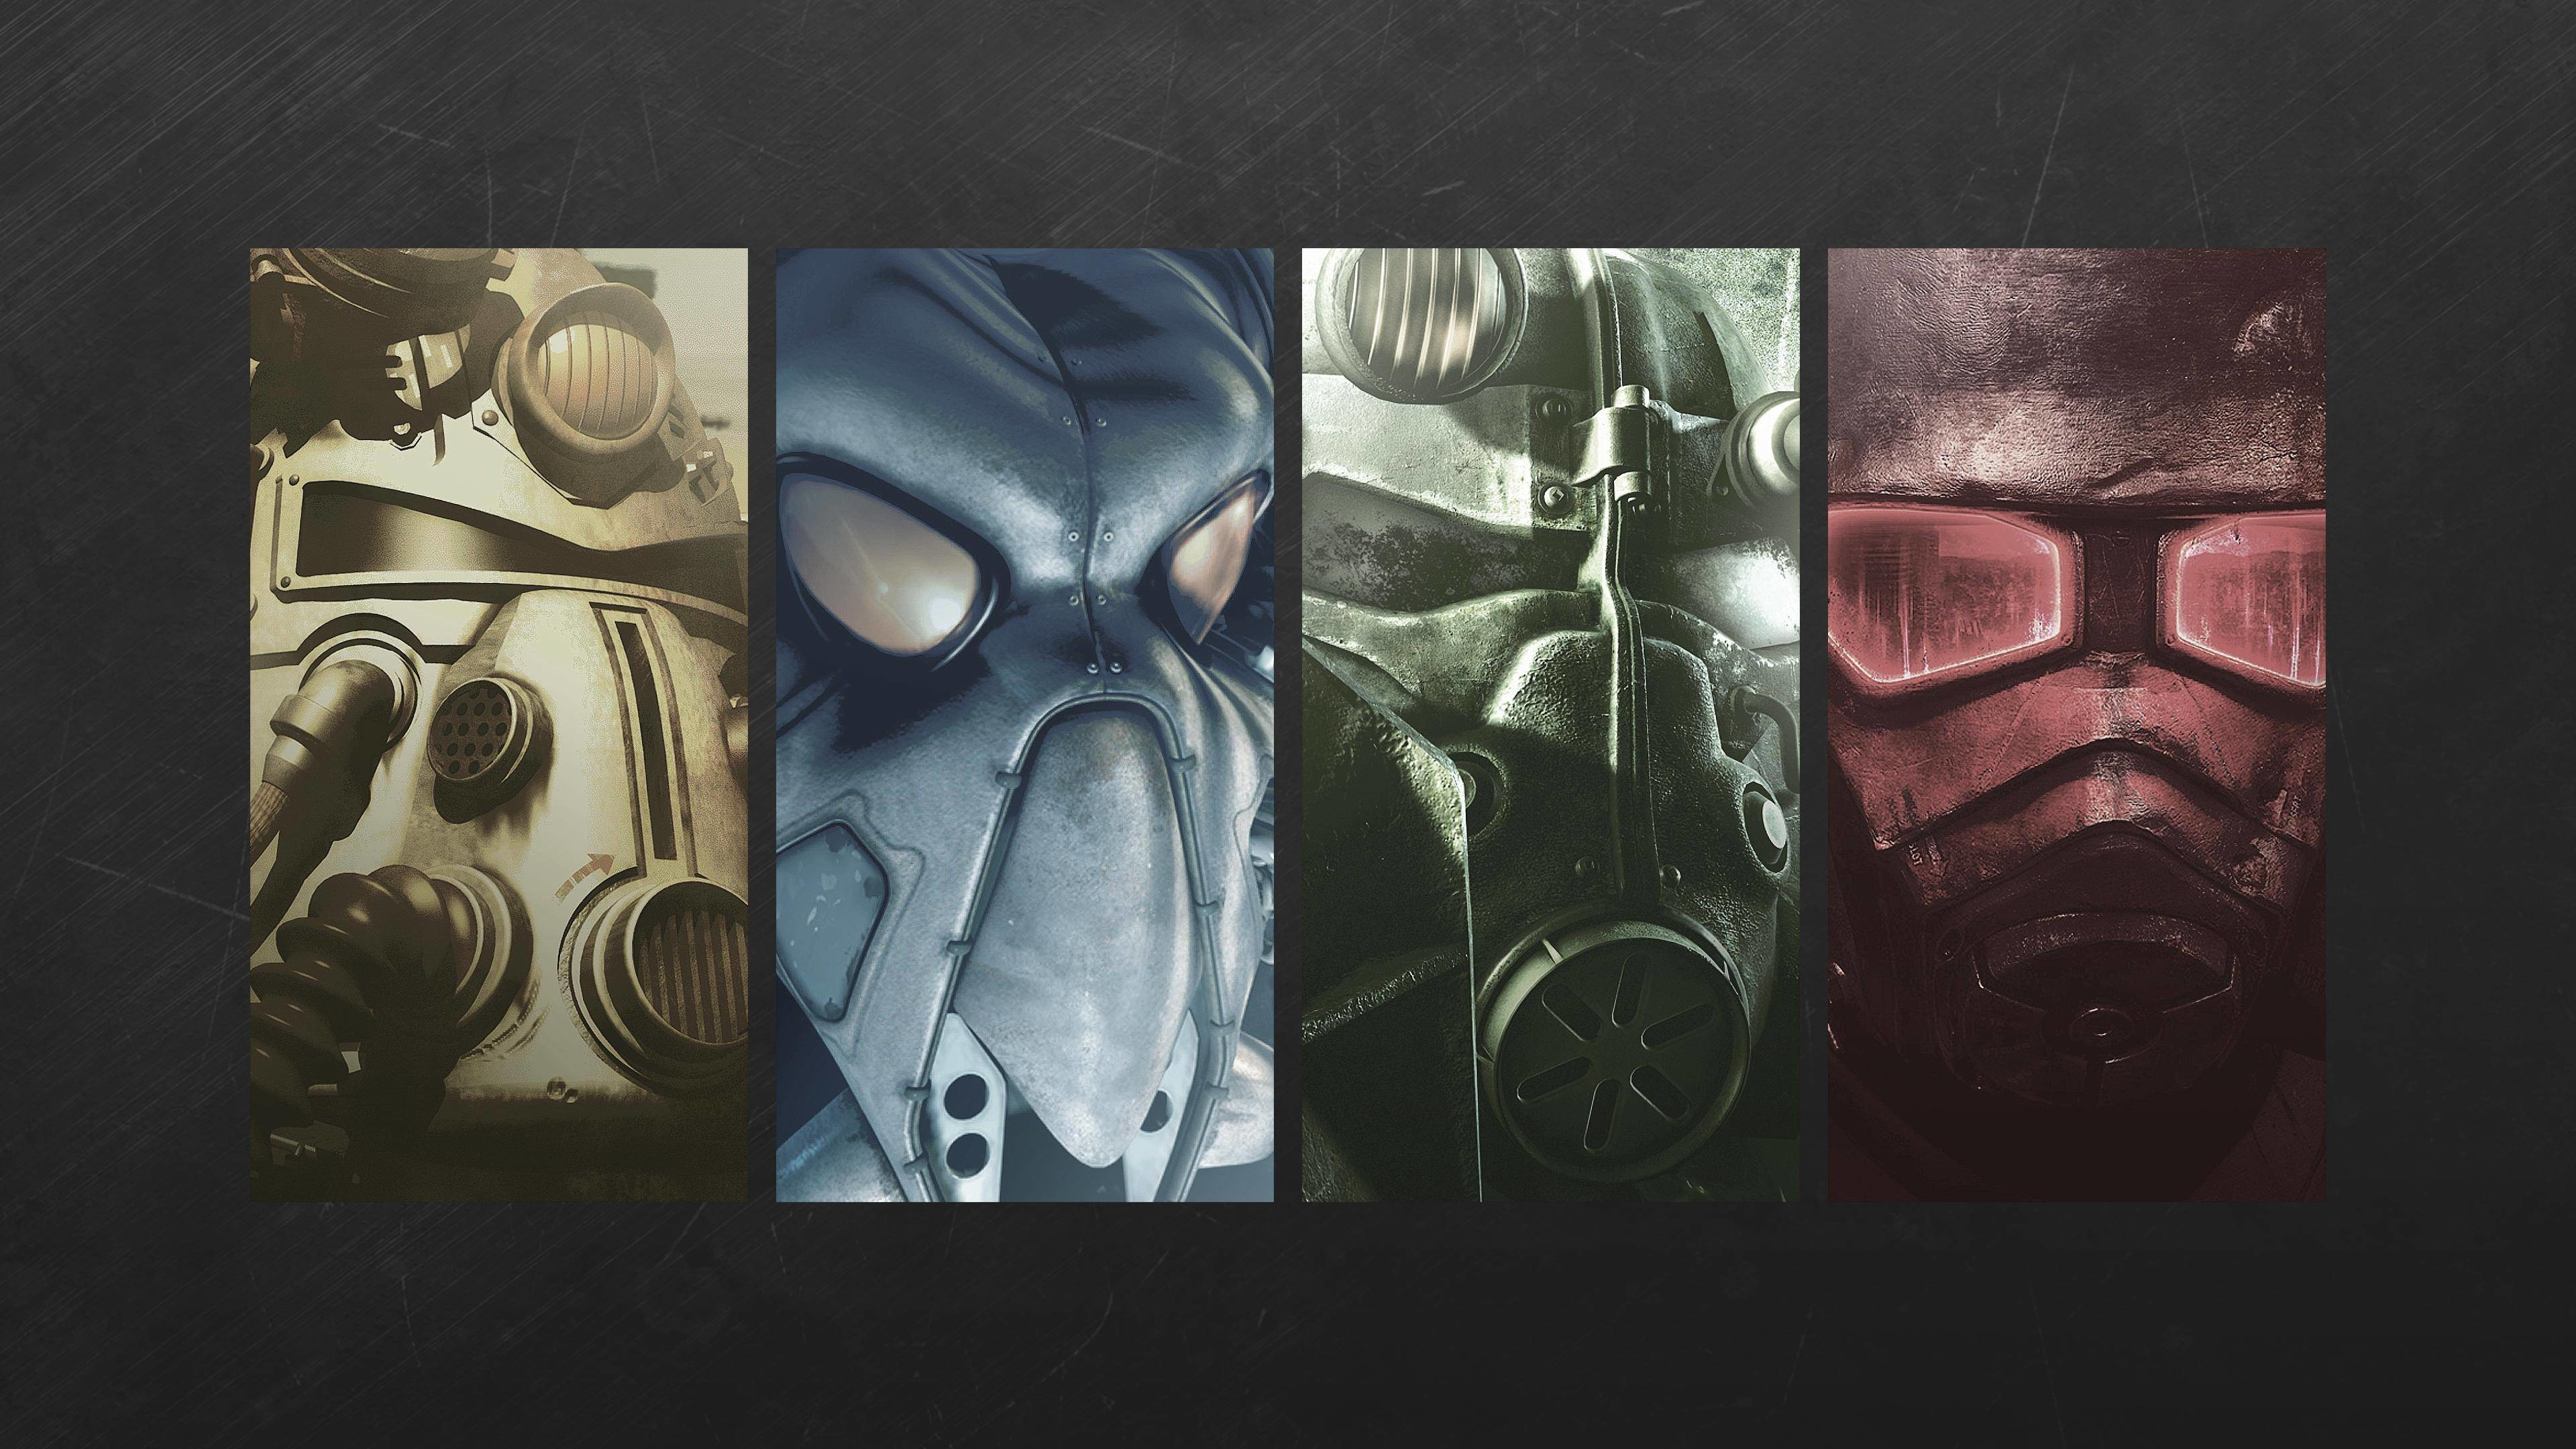 Fallout HD Wallpapers Backgrounds Wallpaper | Wallpapers 4k | Pinterest | Hd  wallpaper, Wallpaper backgrounds and Wallpaper